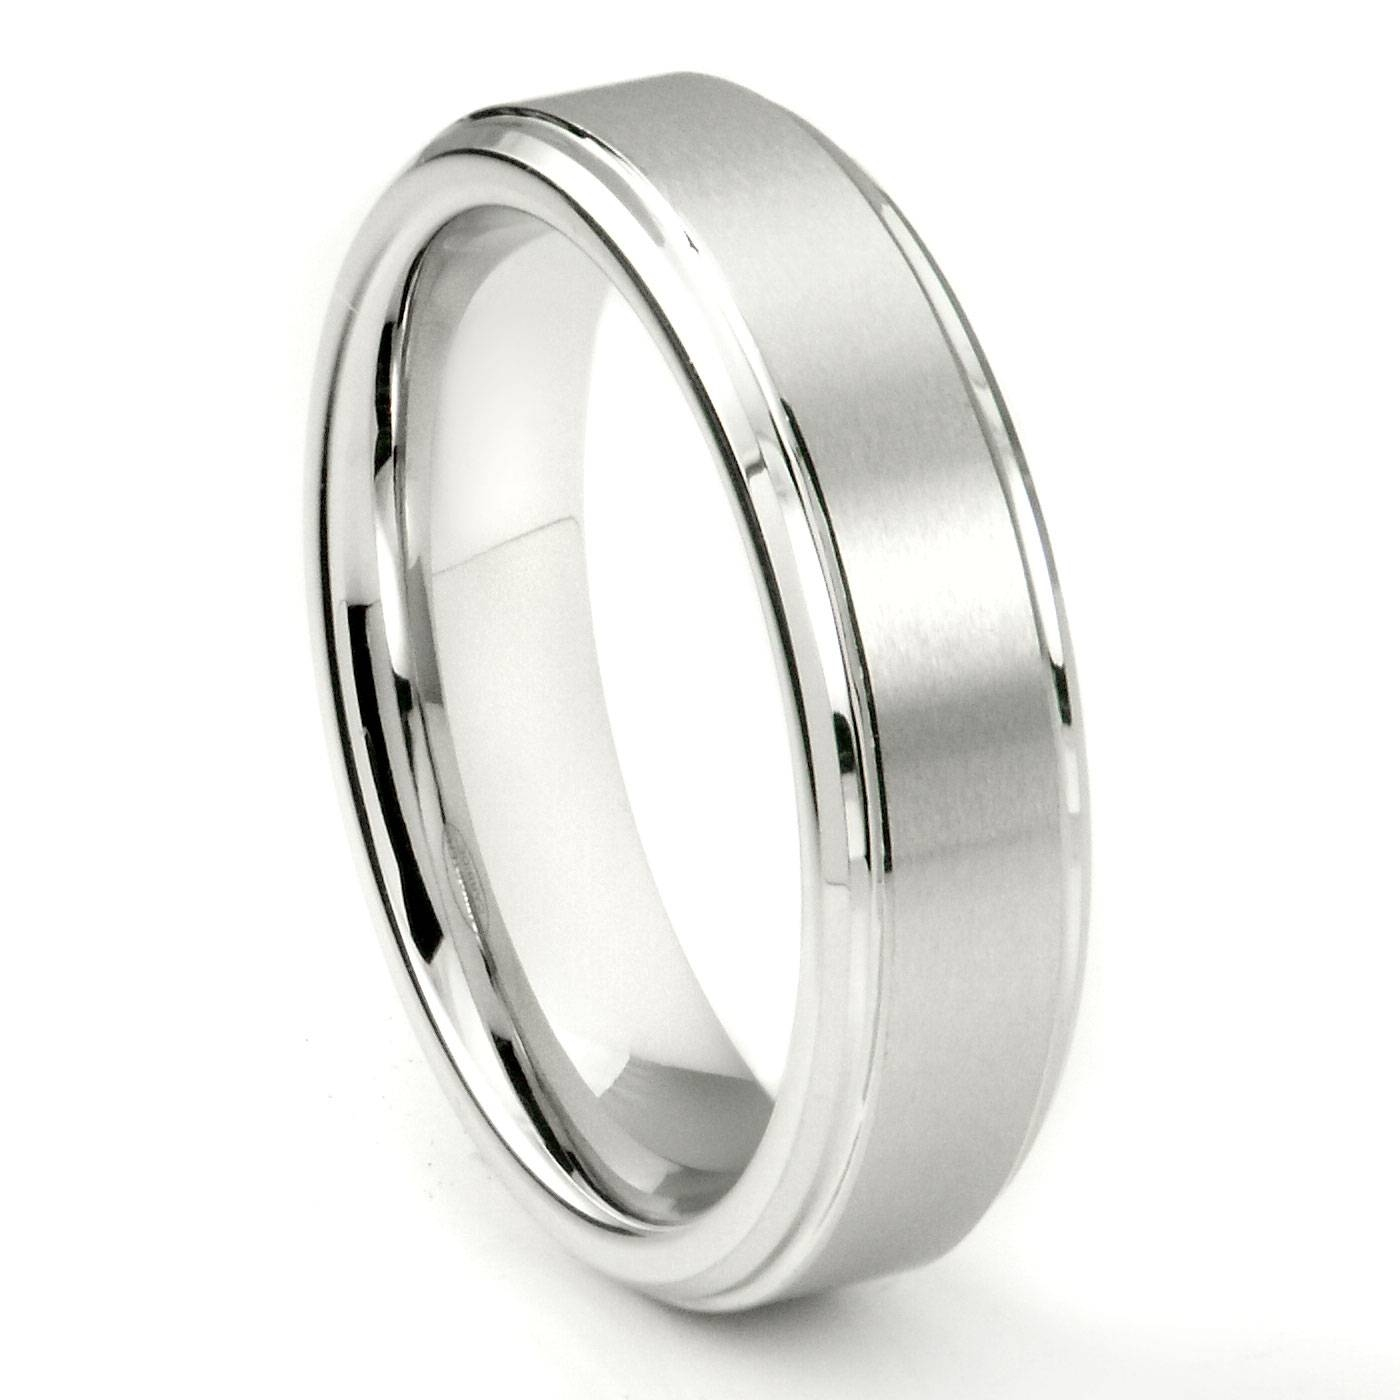 Mens Tungsten Rings & Wedding Bands – Titanium Kay Inside Strongest Metal Wedding Bands (View 6 of 15)